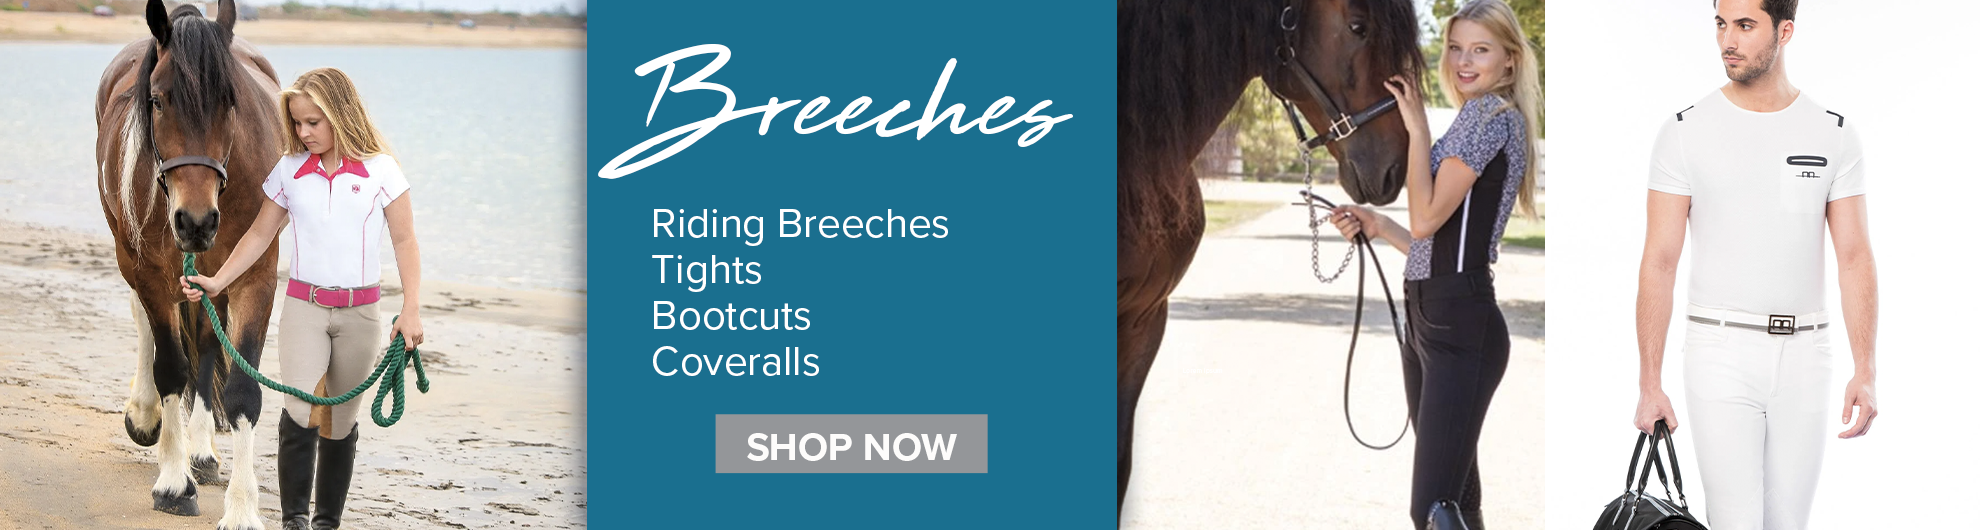 Top Brand Breeches on Equishopper